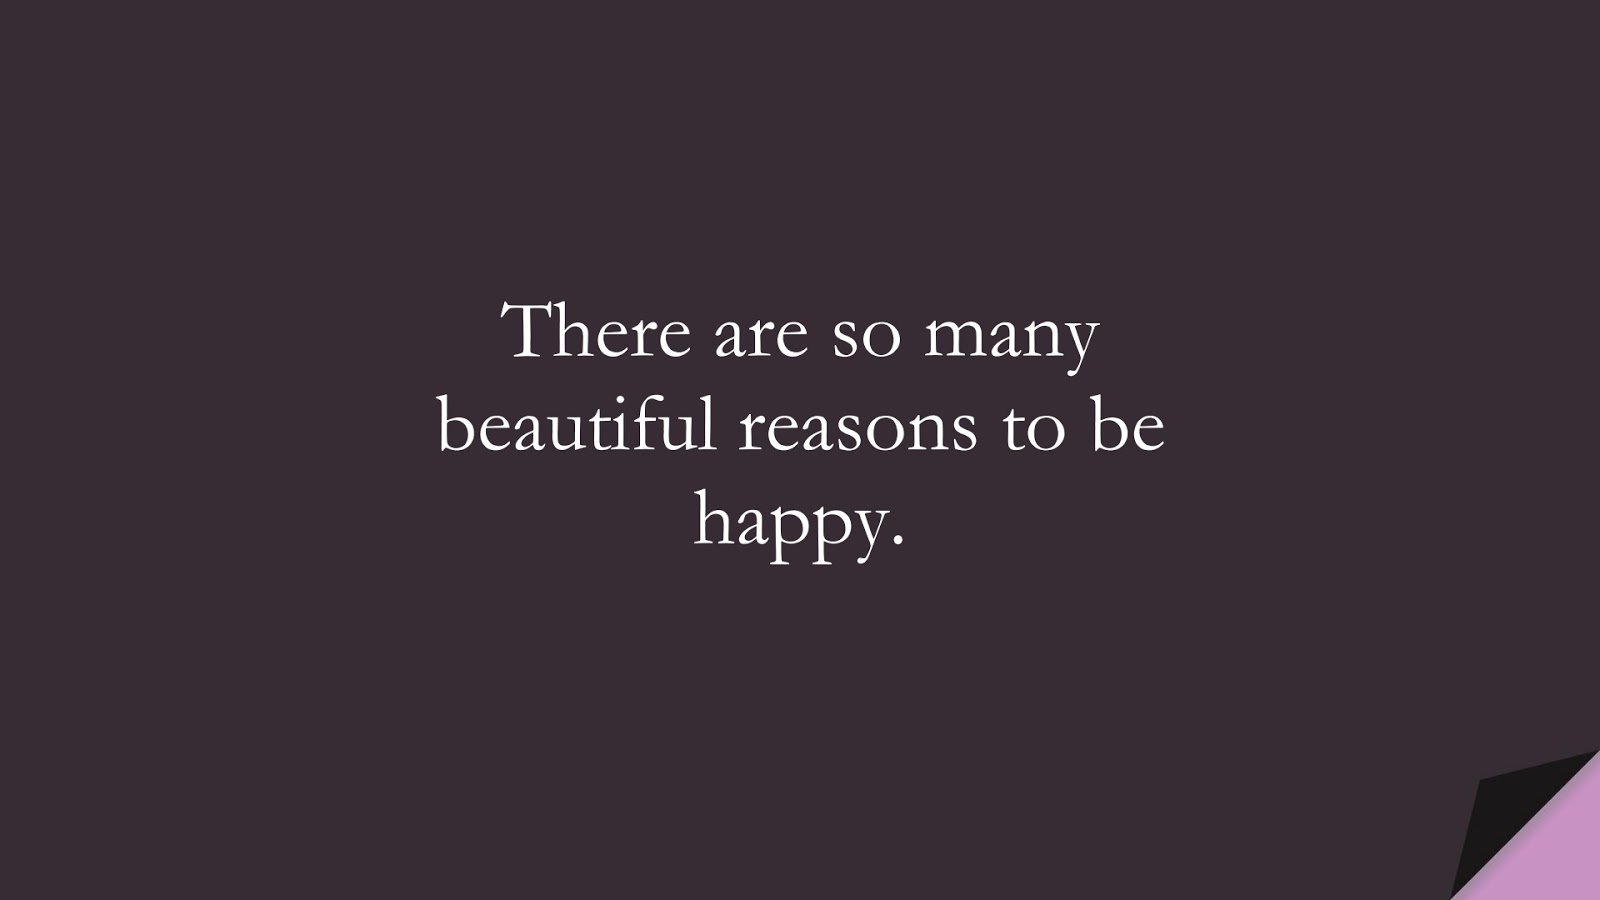 There are so many beautiful reasons to be happy.FALSE